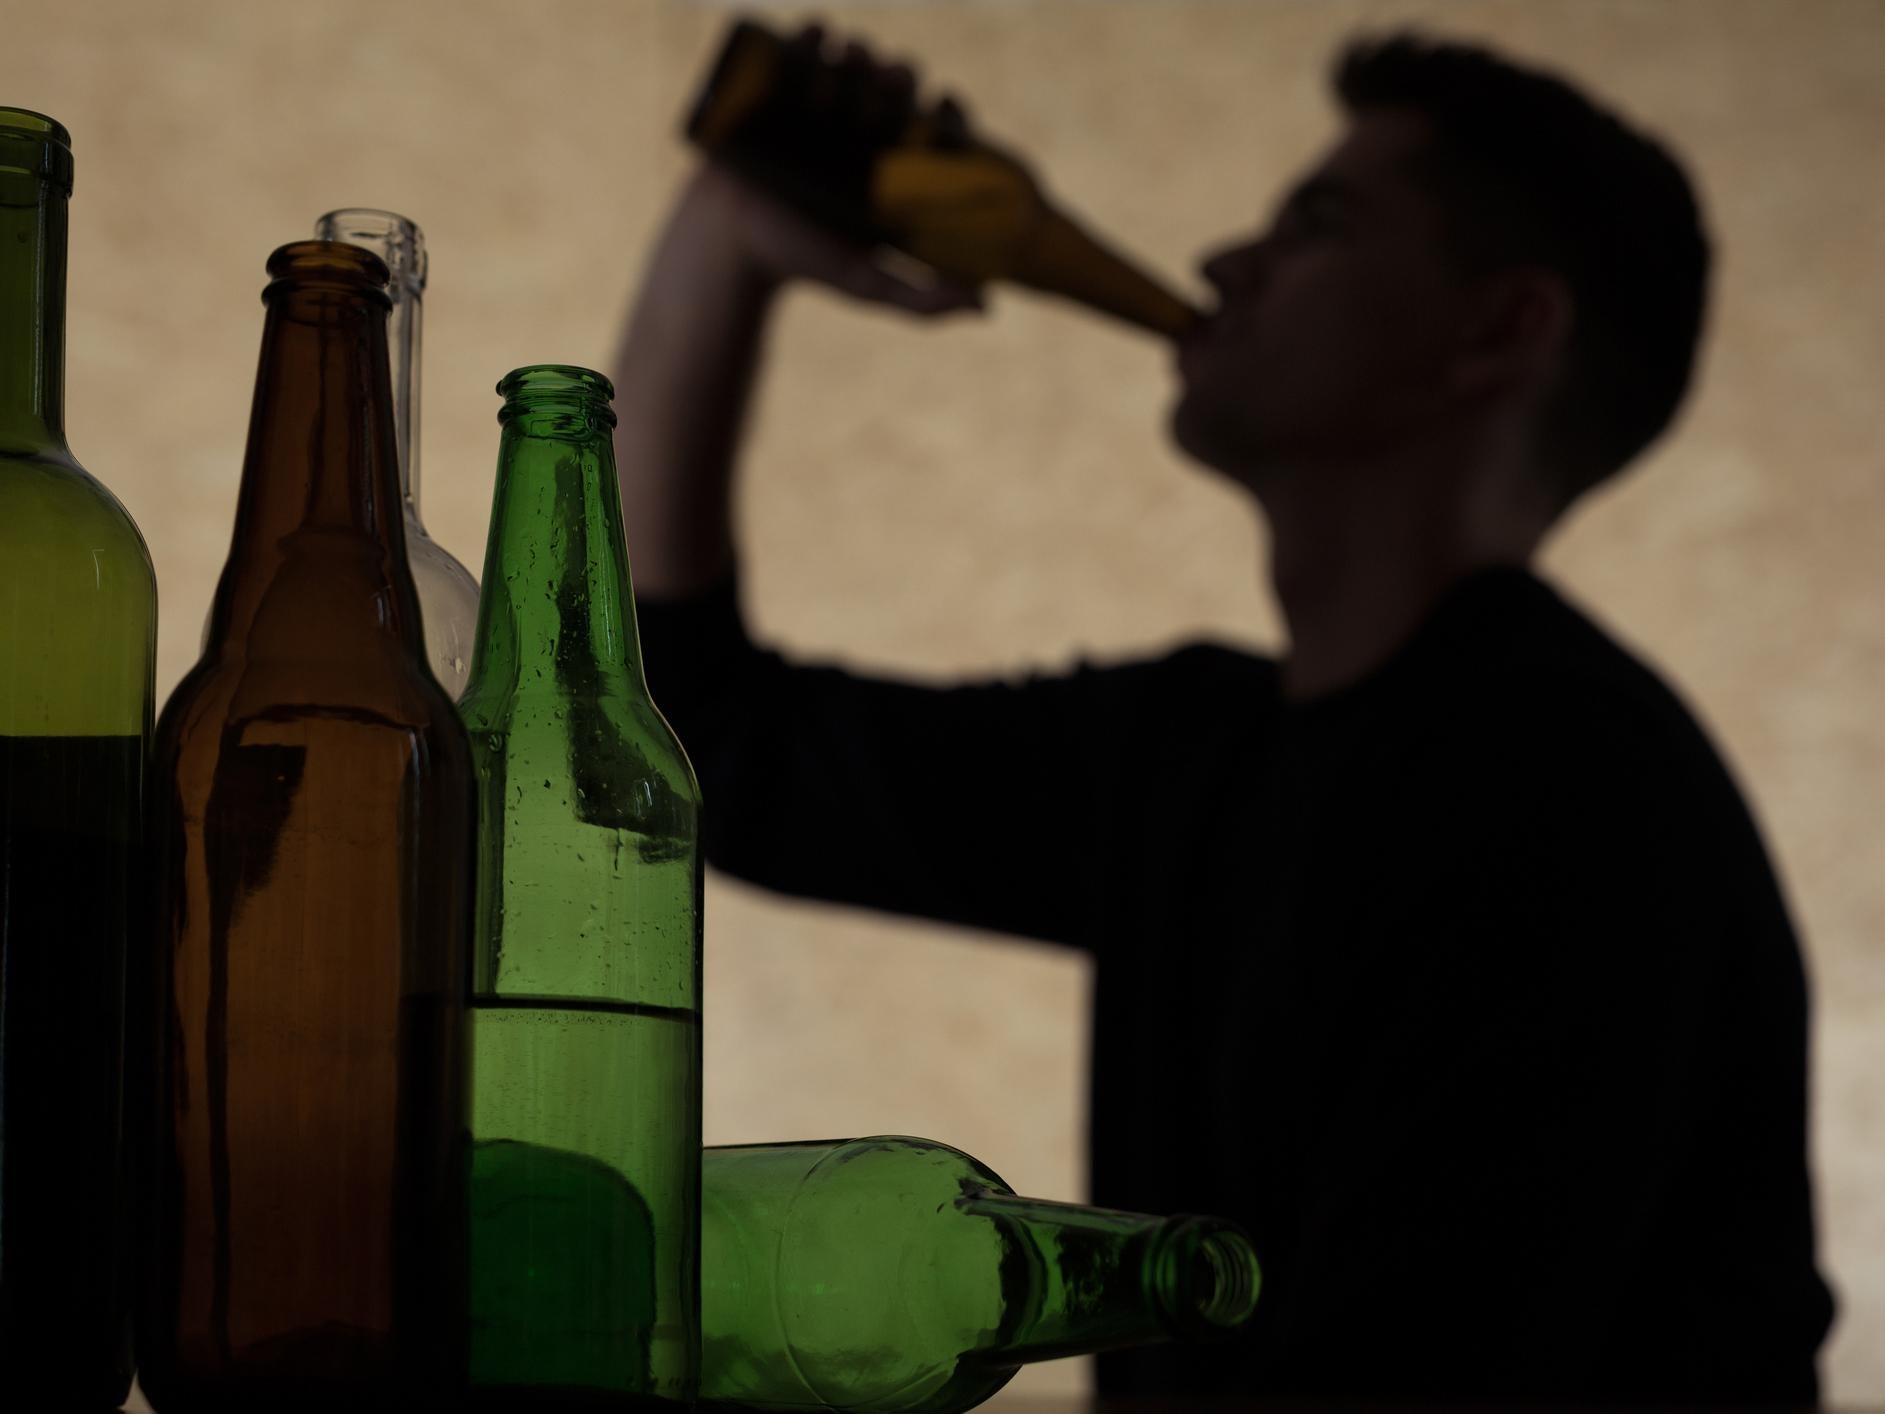 No obliging stage of alcohol consumption, fundamental see concludes thumbnail